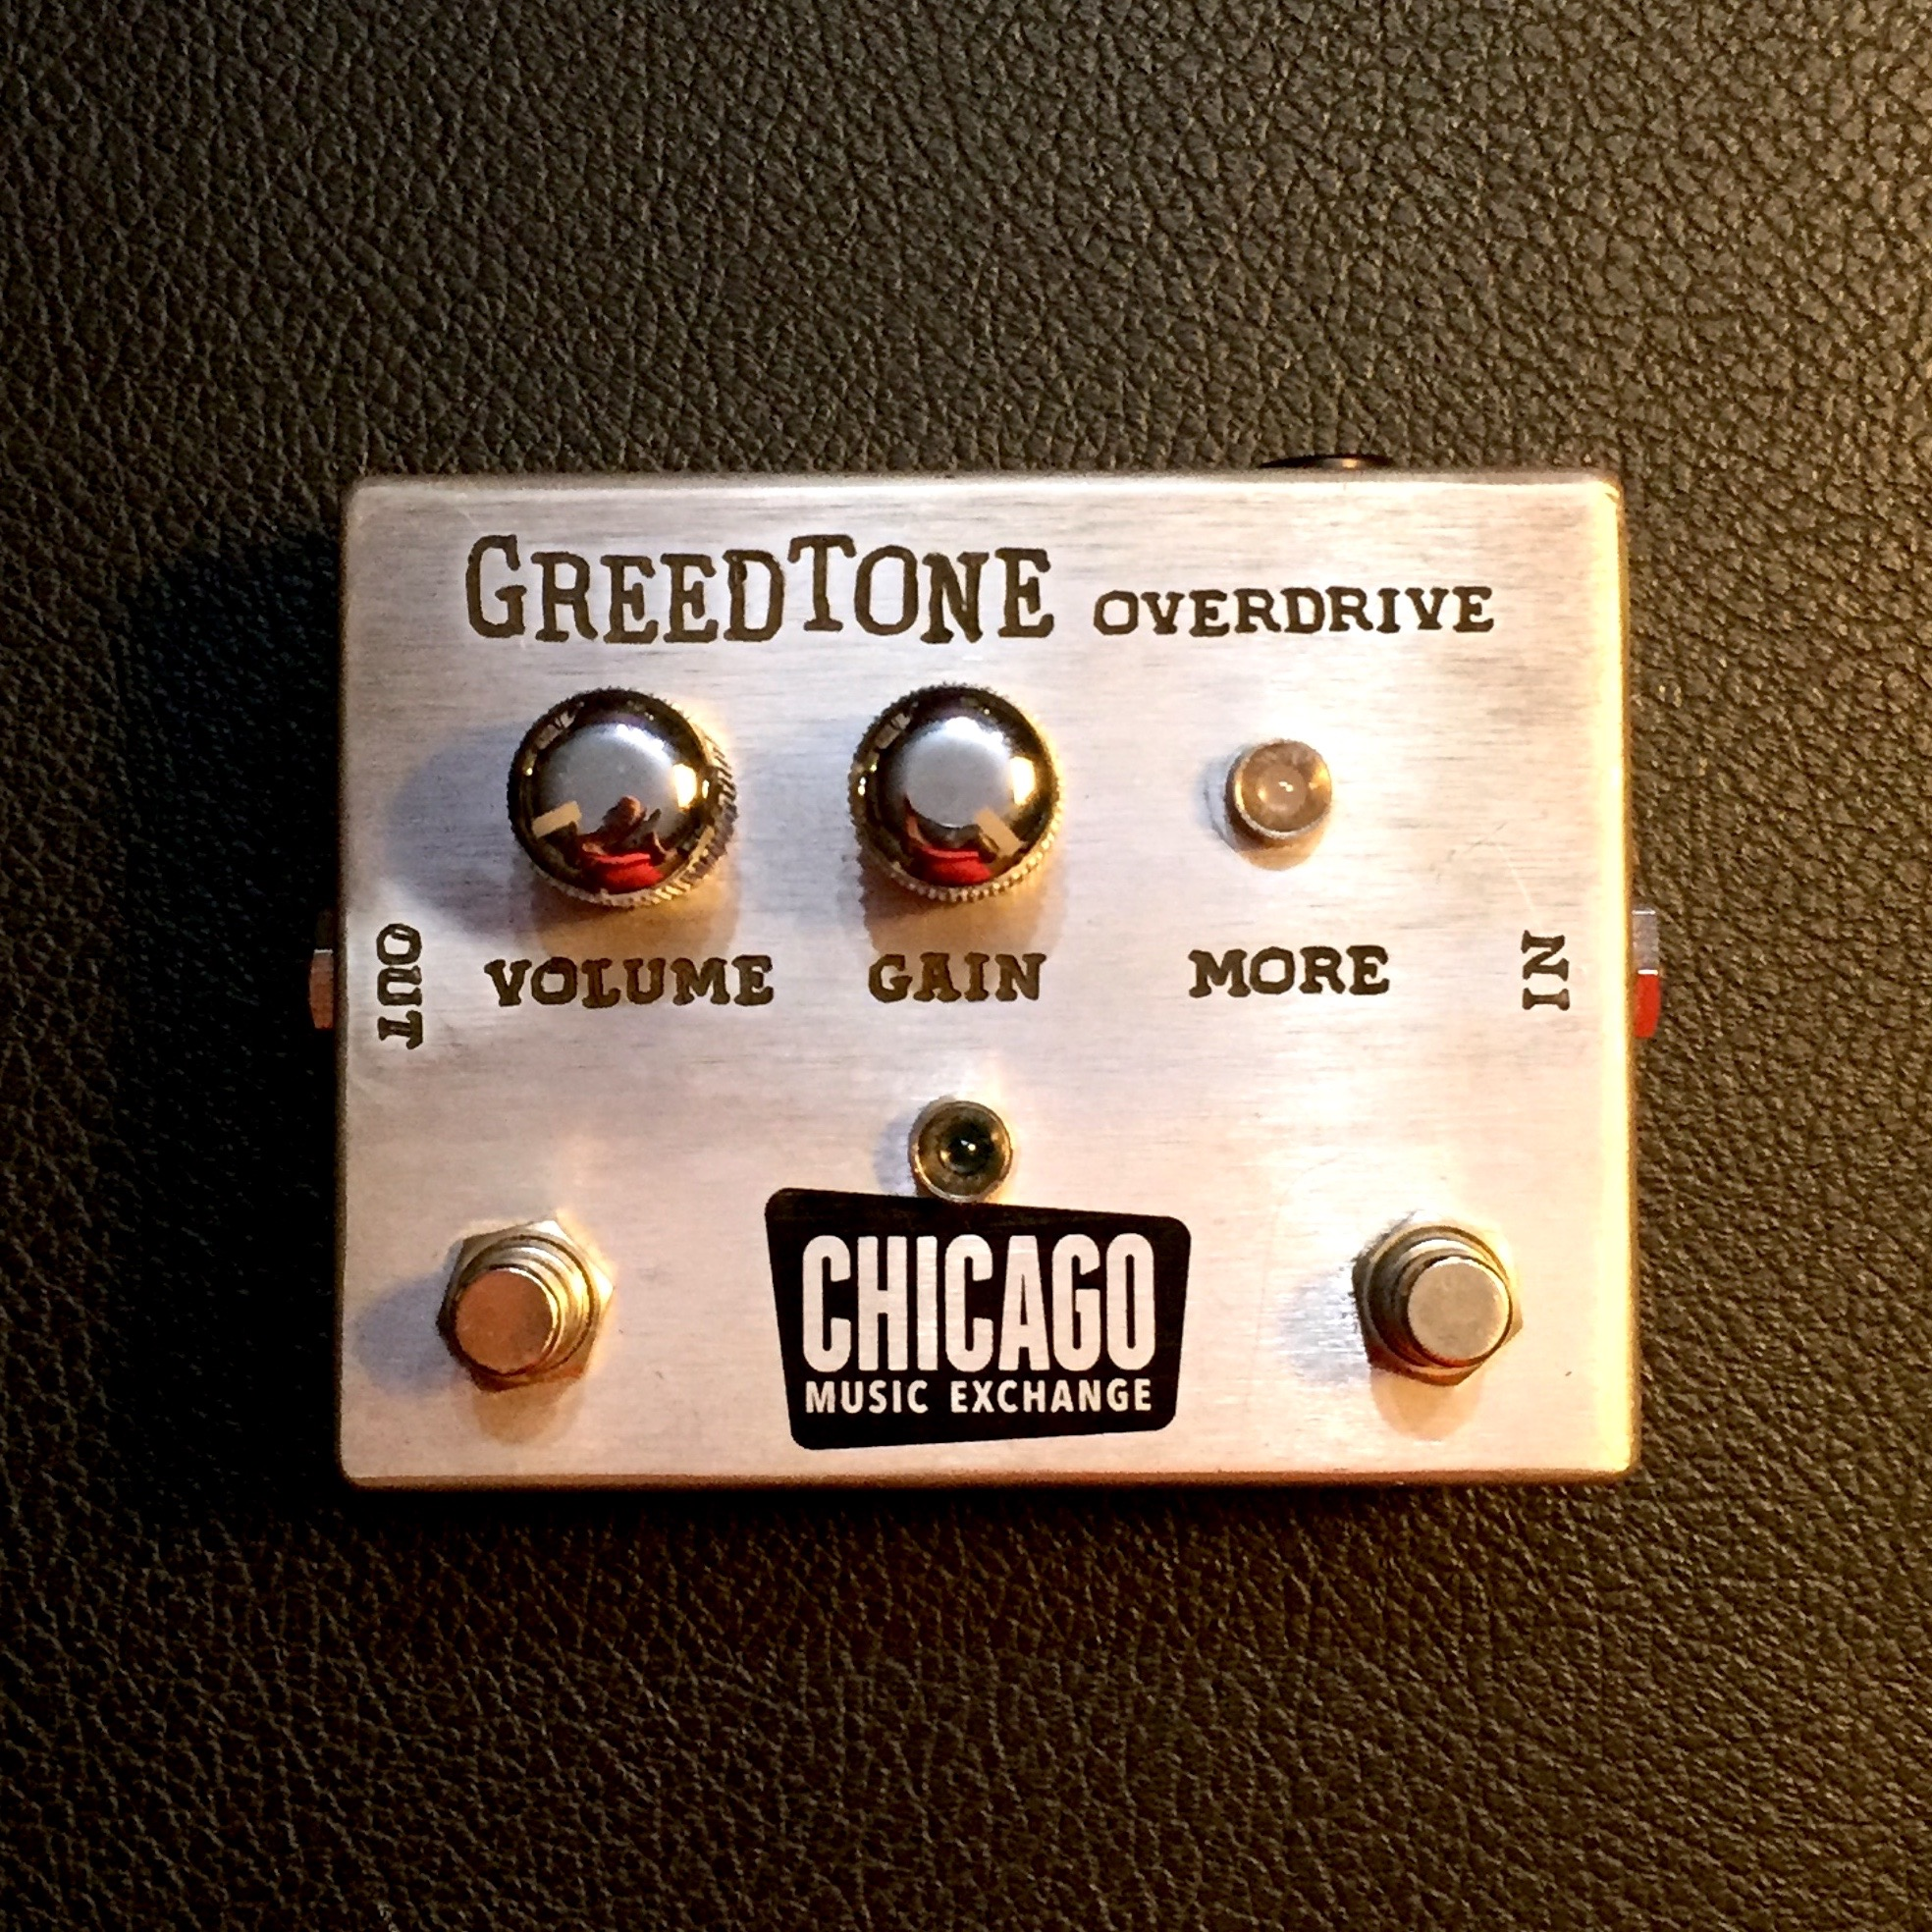 Chicago Music Exchange Greedtone